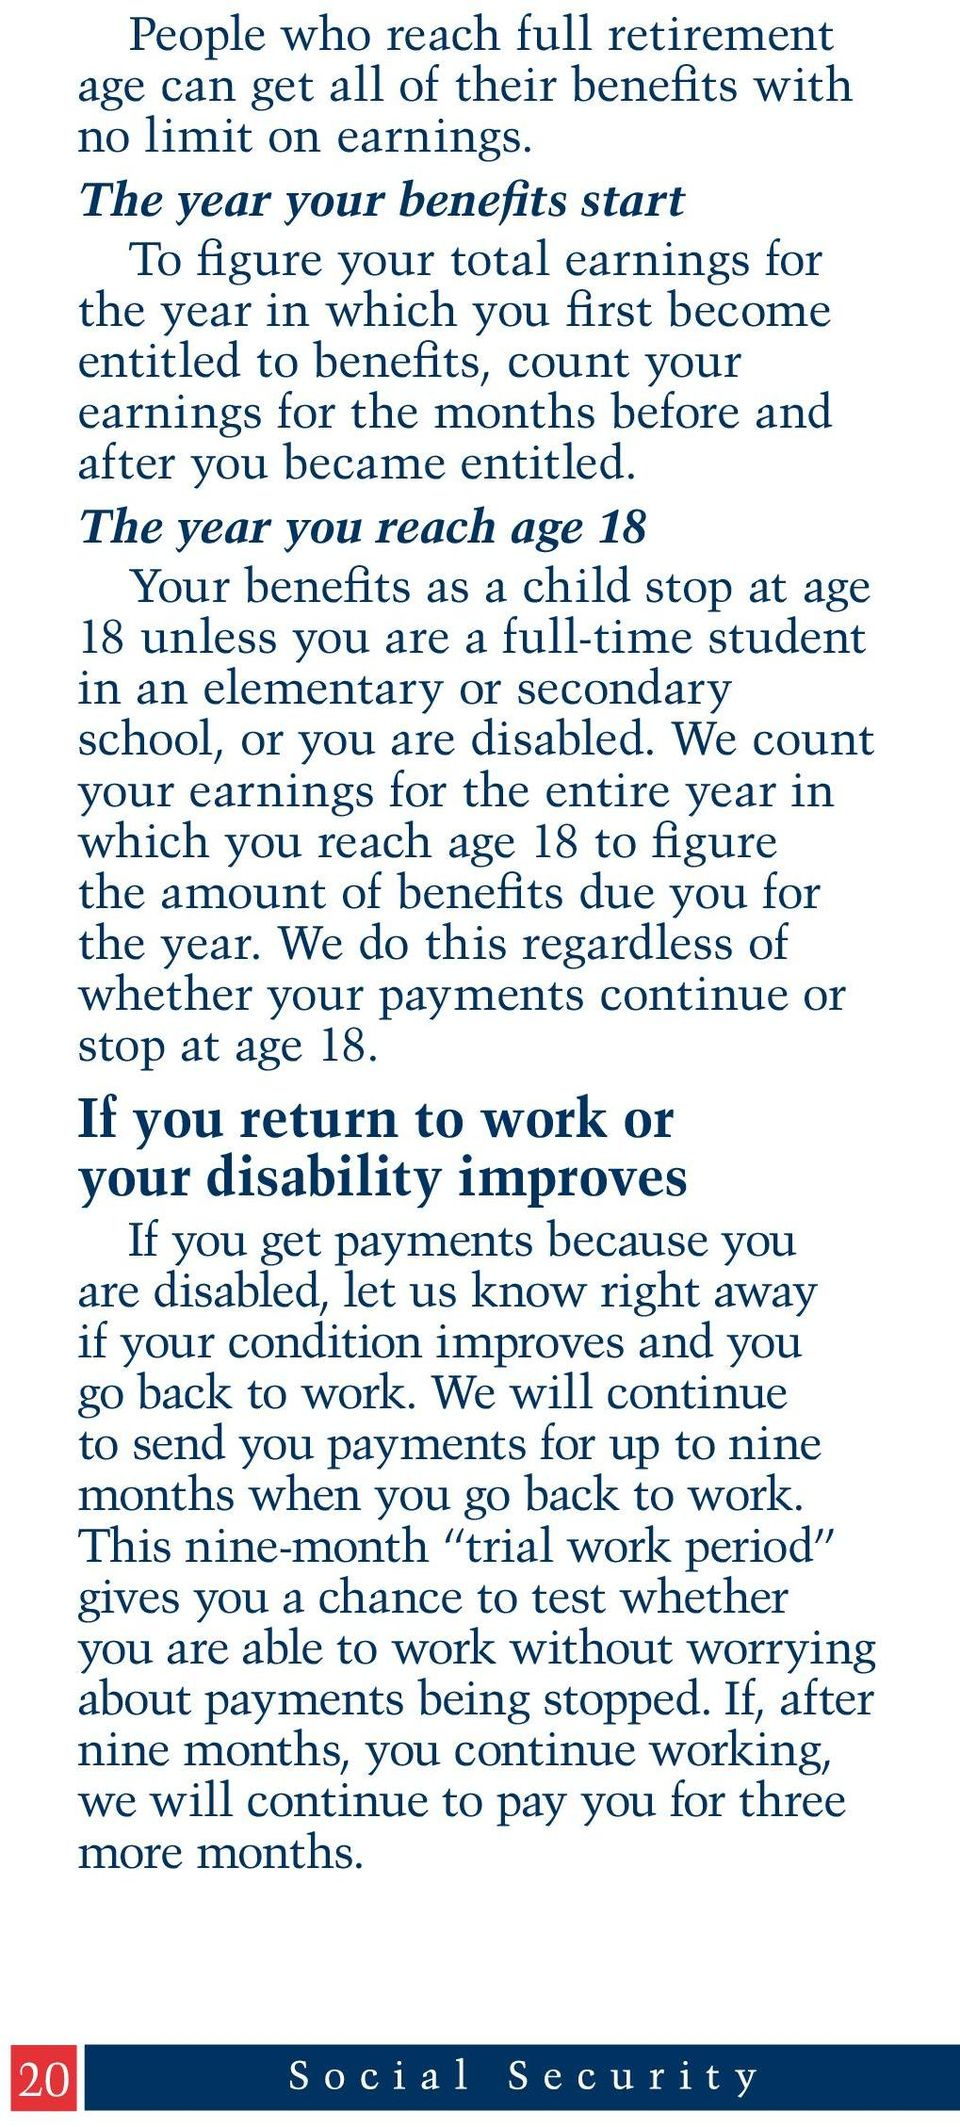 The year you reach age 18 Your benefits as a child stop at age 18 unless you are a full-time student in an elementary or secondary school, or you are disabled.